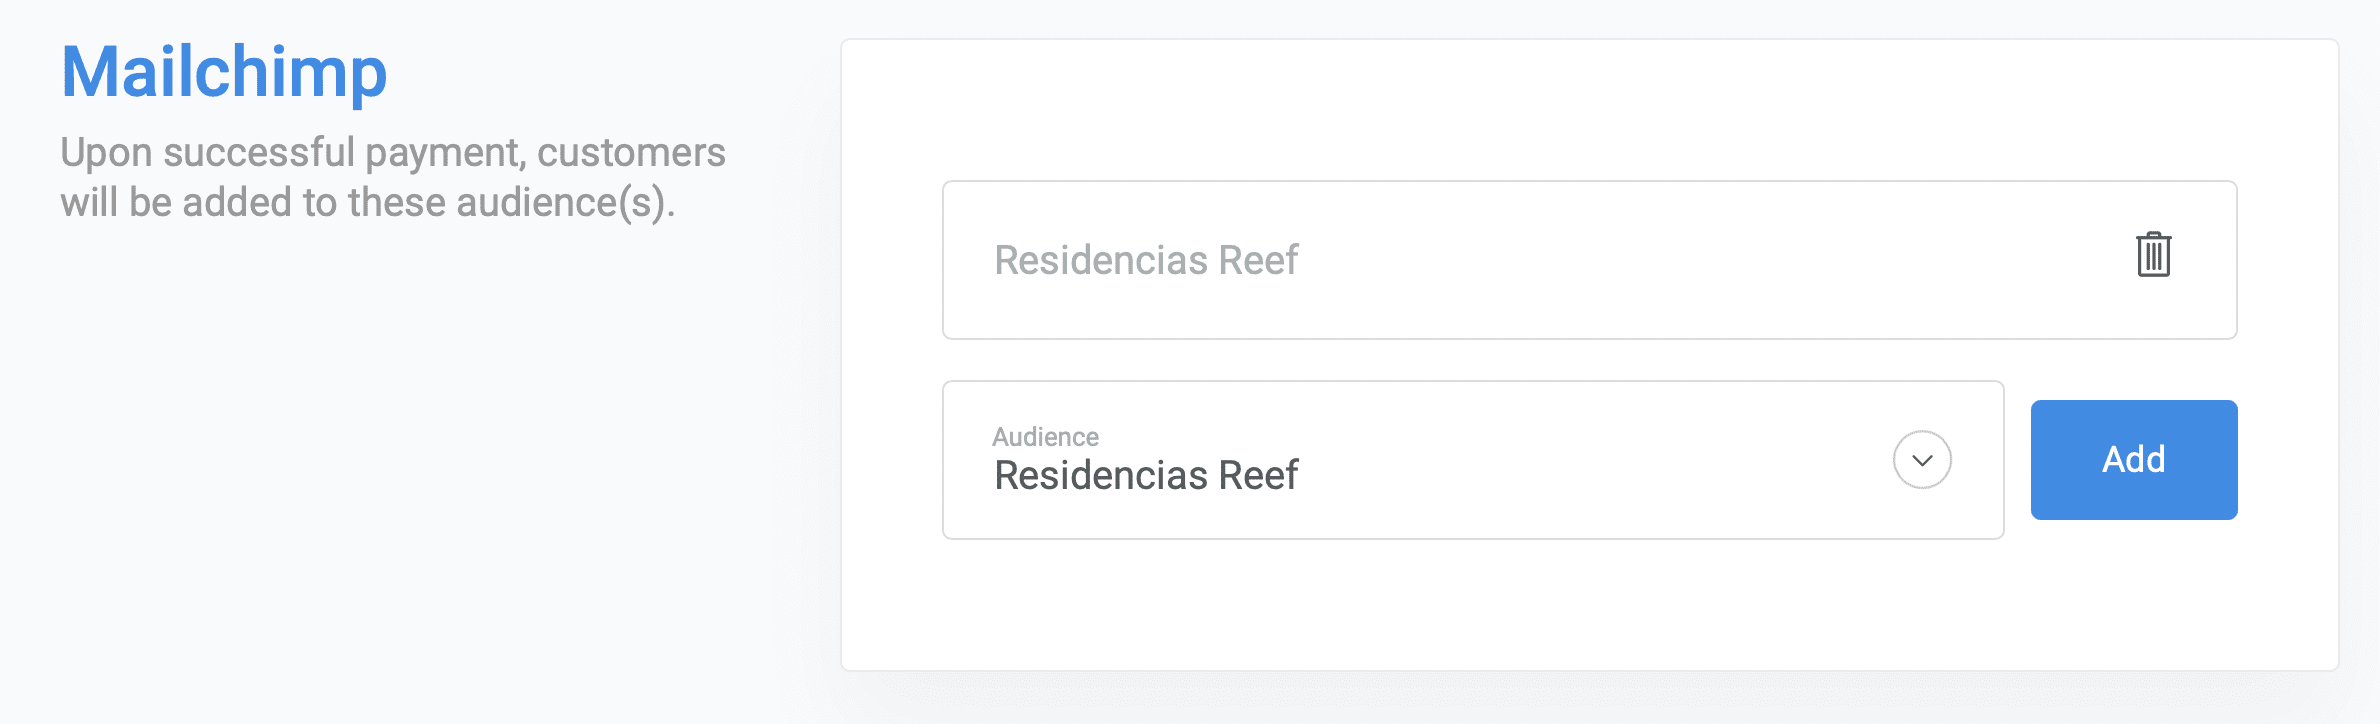 Integrating Stripe with Mailchimp and adding payers through ChargeKeep